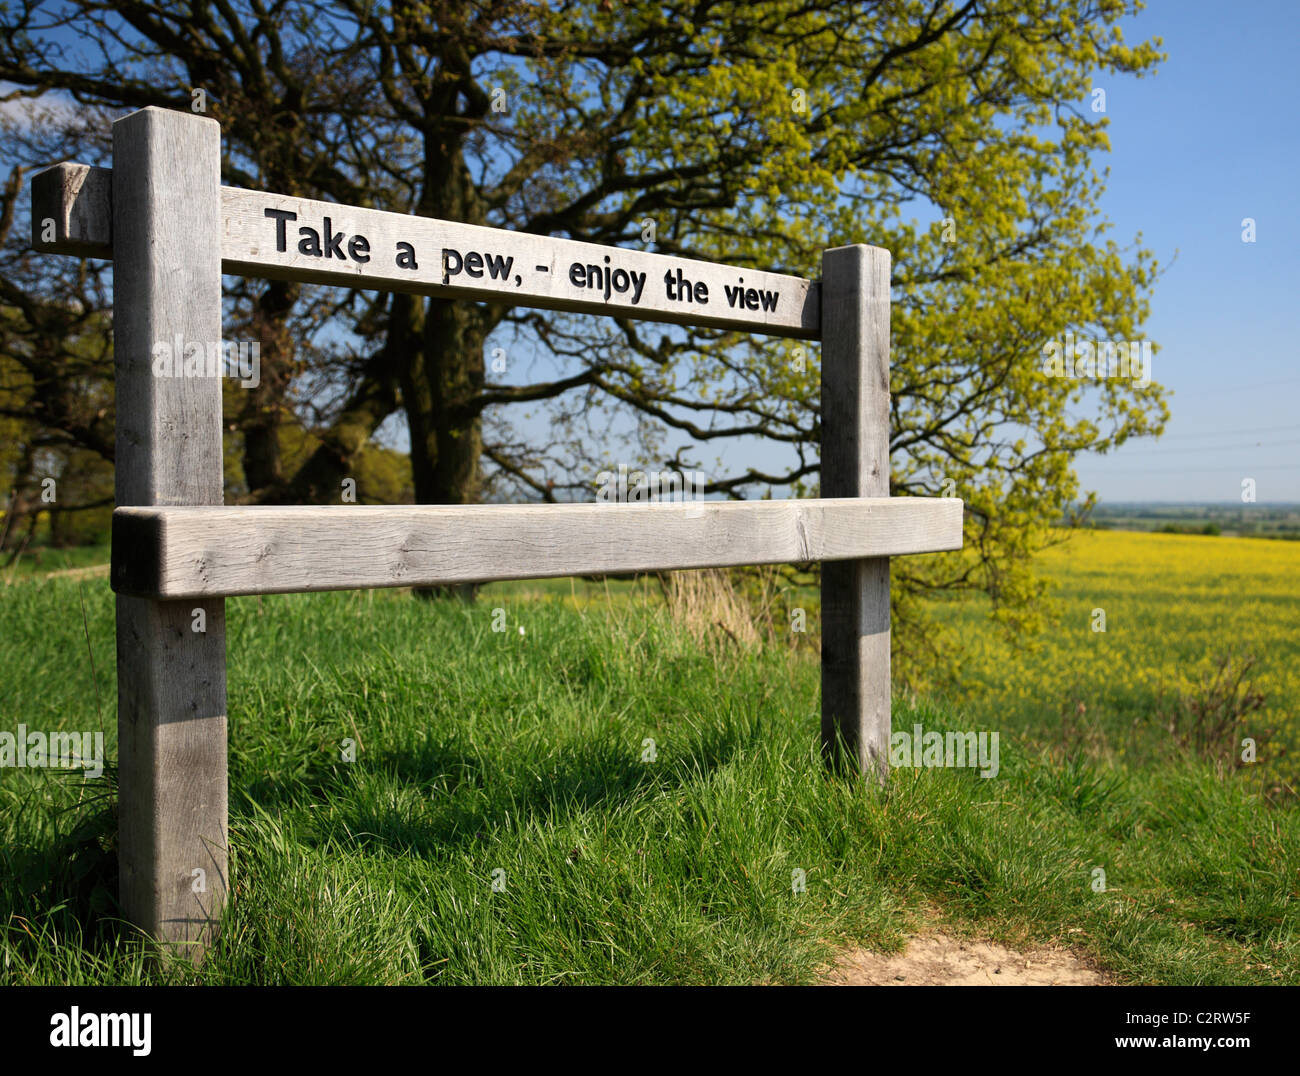 Rural bench with a message, Take a pew, enjoy the view . - Stock Image